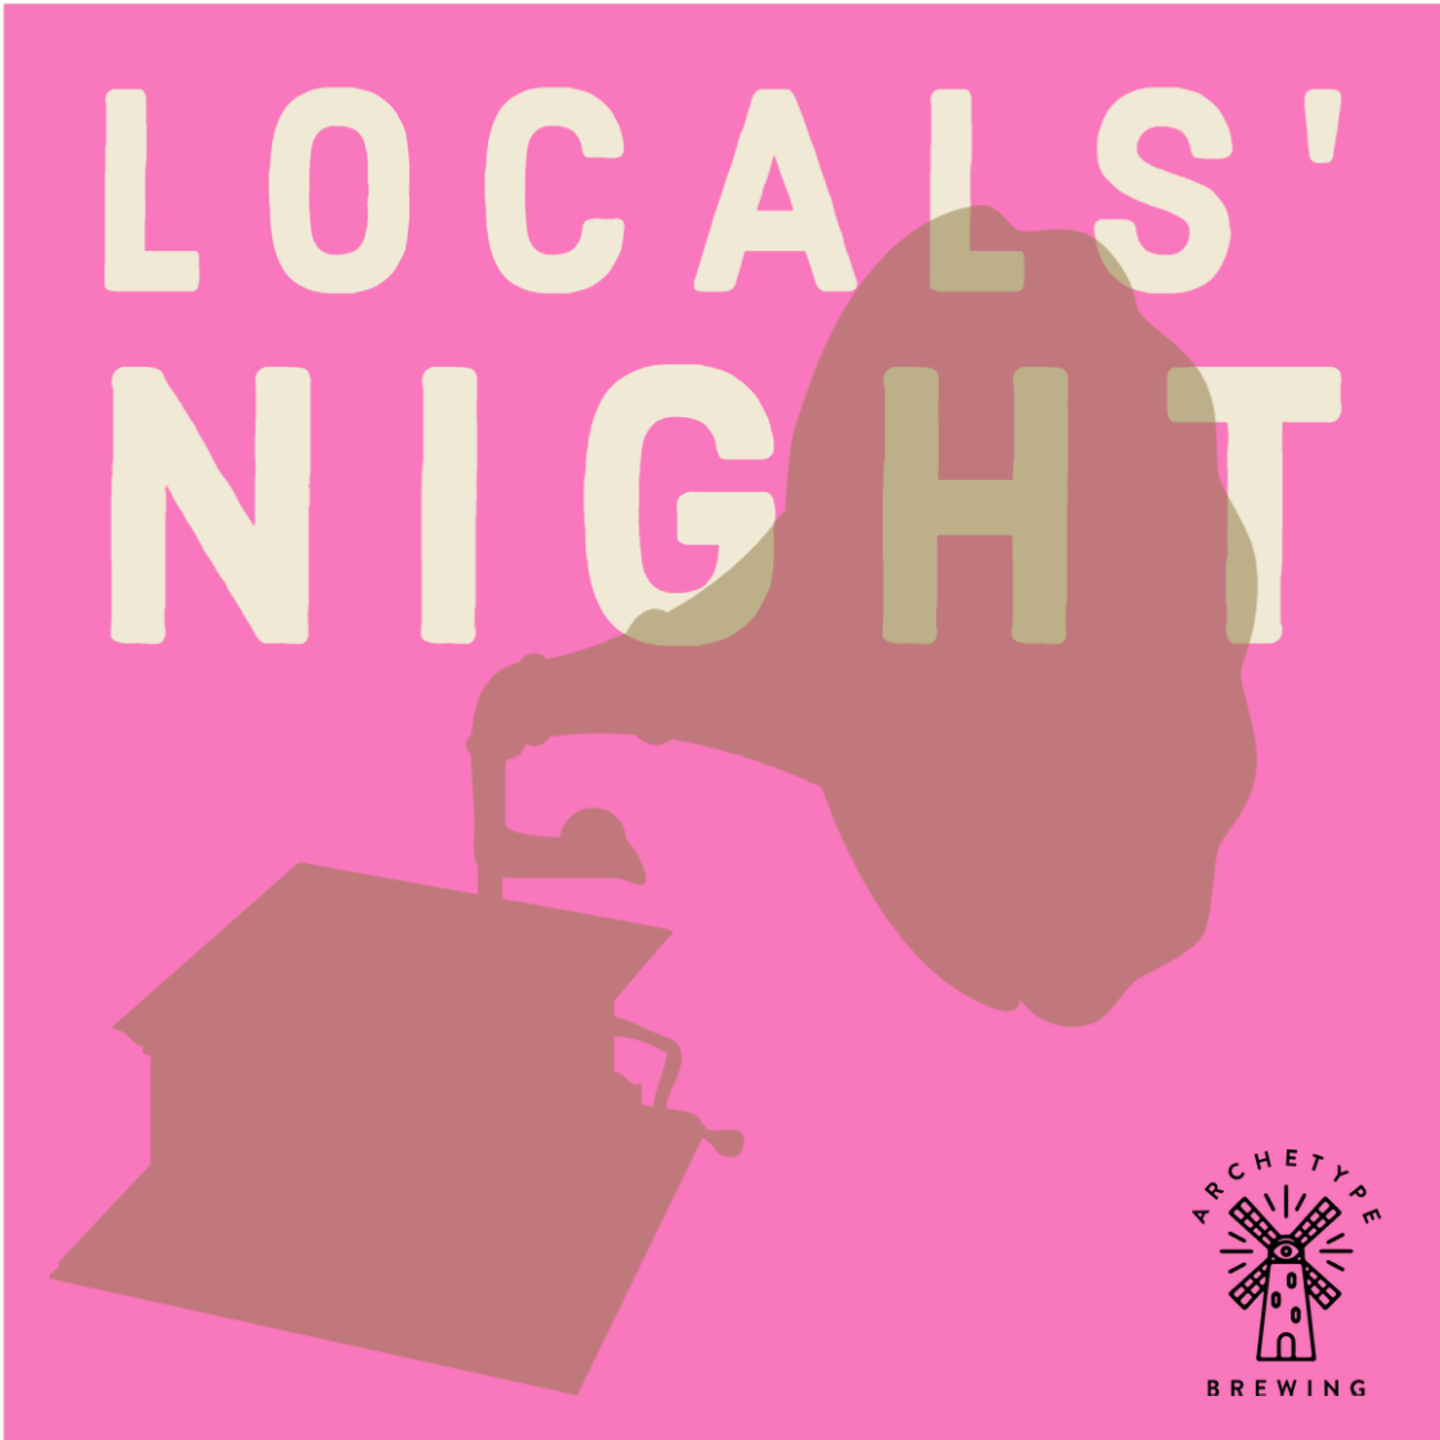 Local's Night Archetype Brewing Wed Tap lounge + Venue